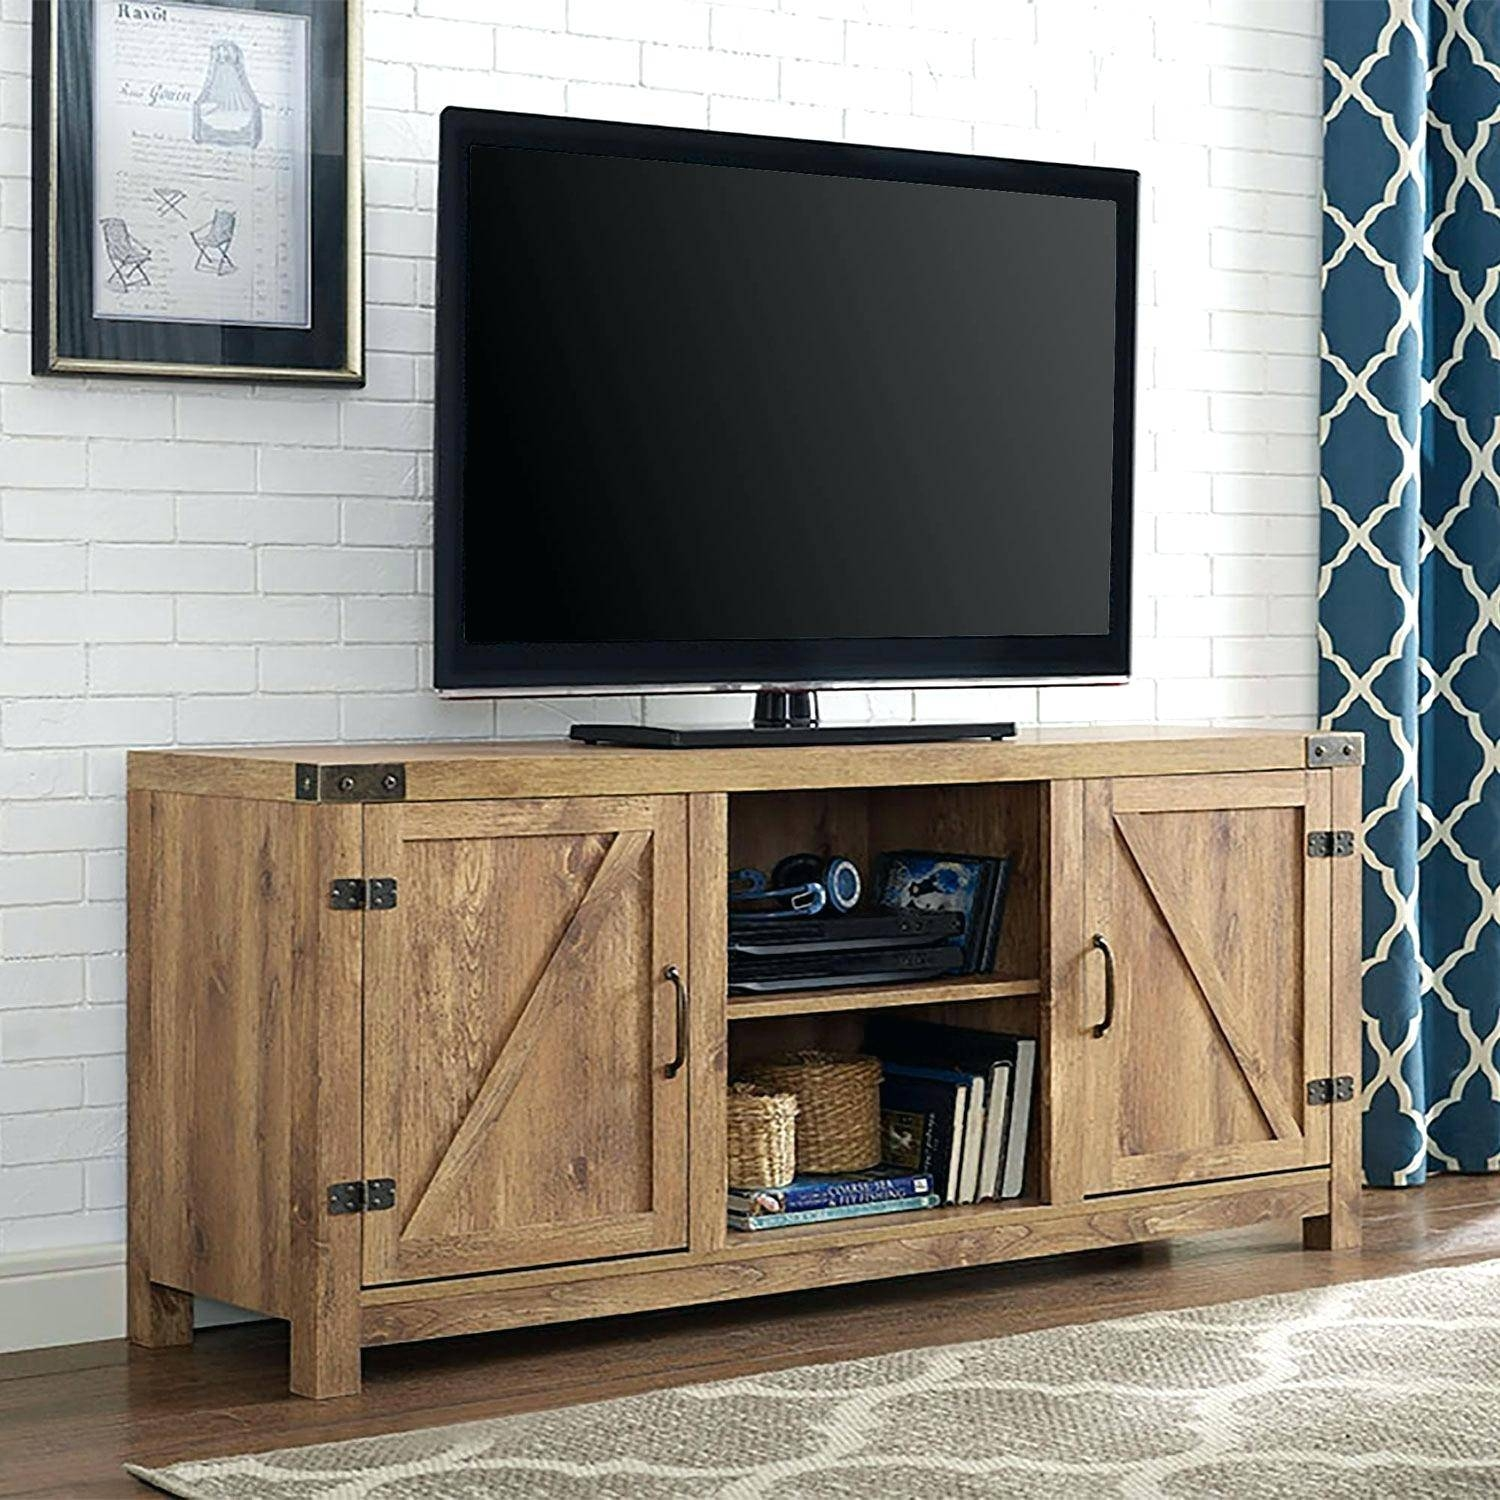 Tv Stand: Superb 38 Inch Tv Stand For Room Ideas. Tv Stand throughout Tv Stands 38 Inches Wide (Image 13 of 15)